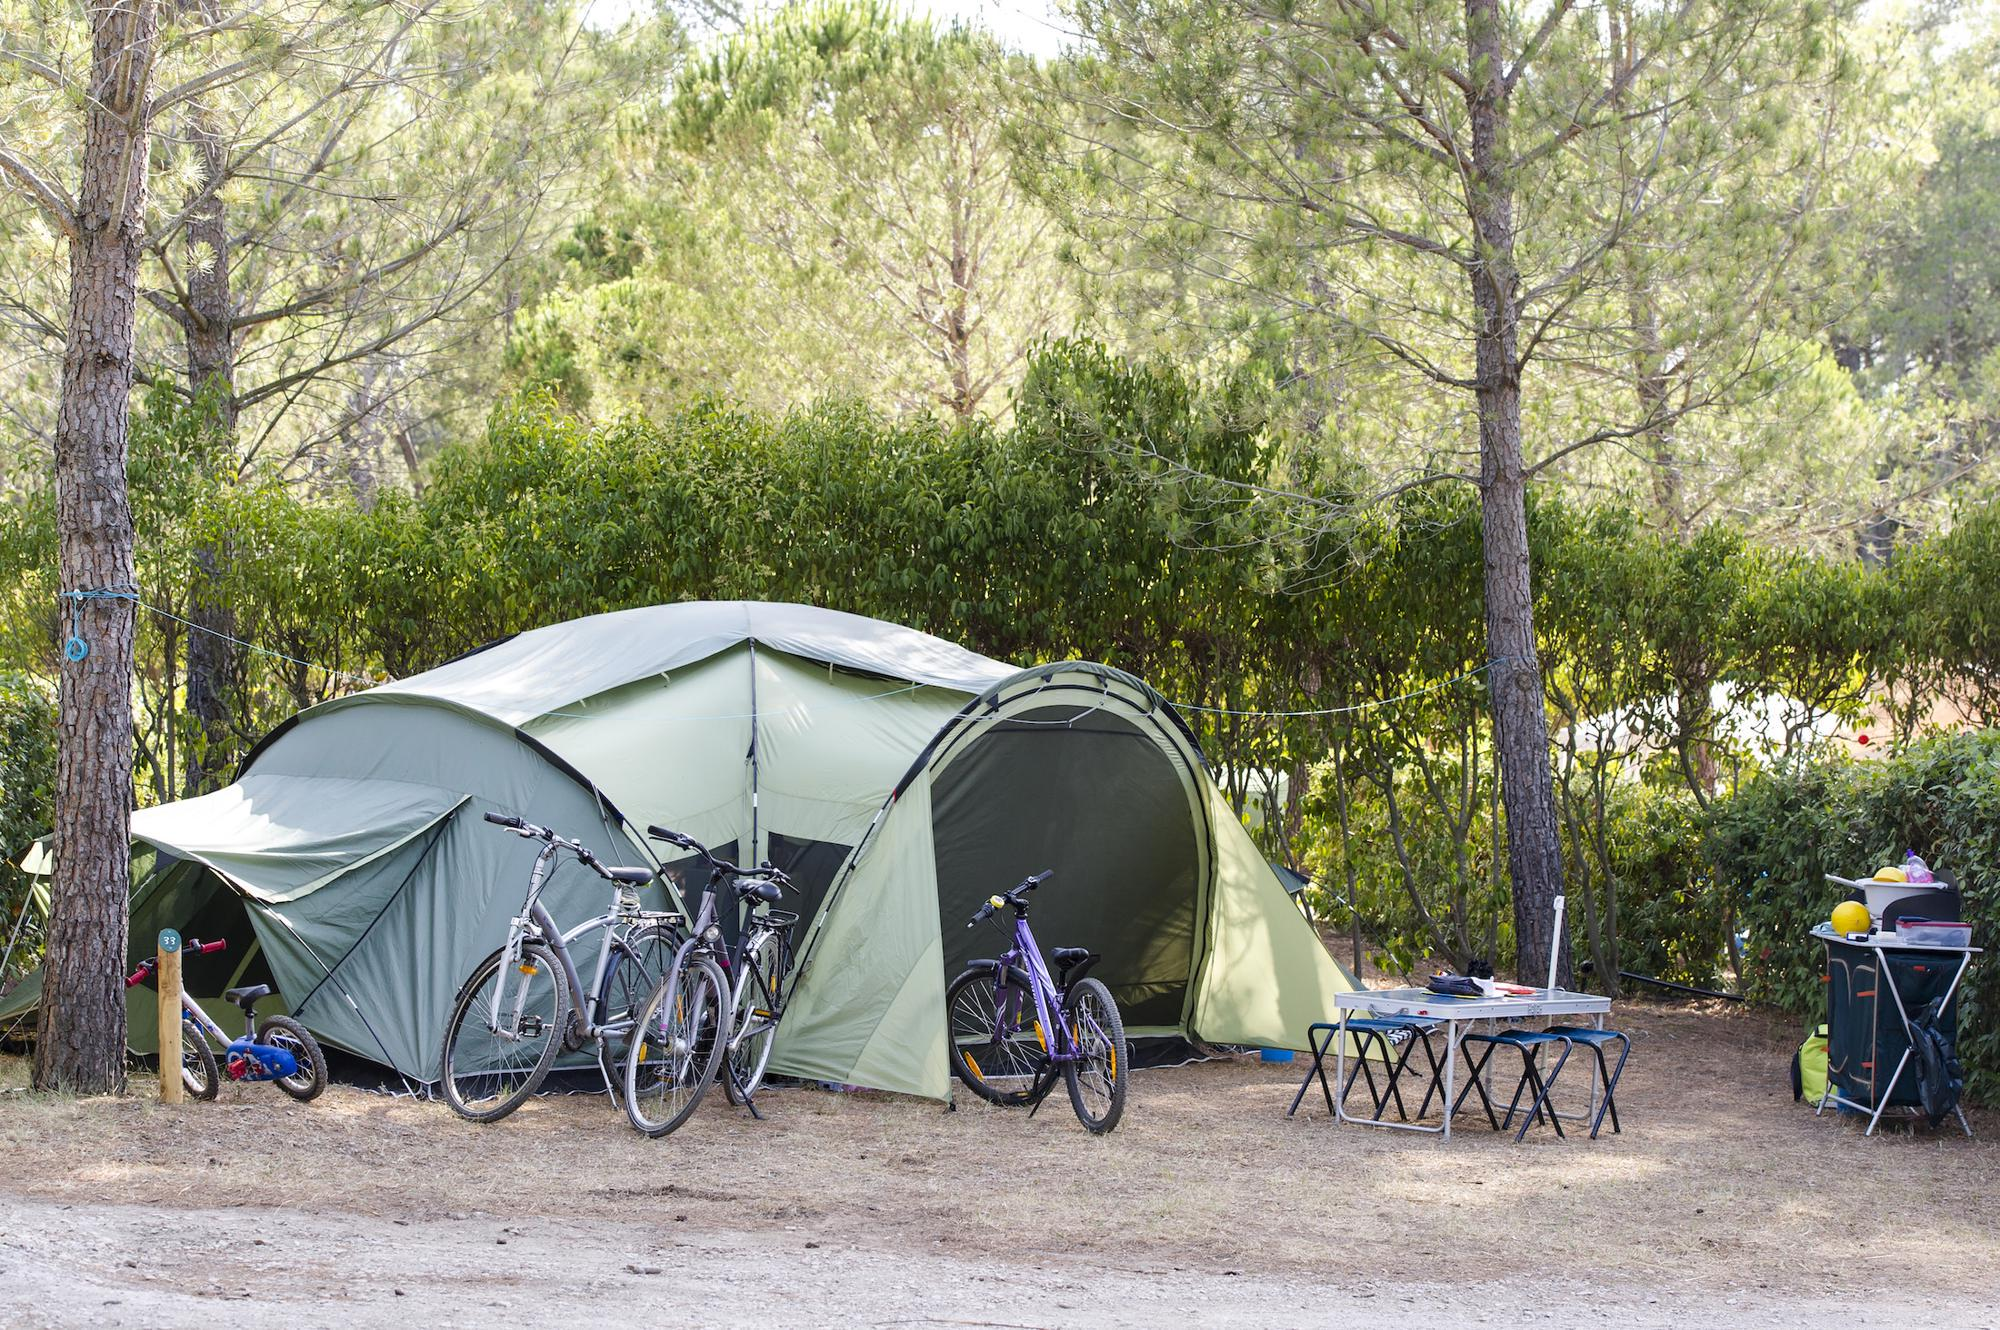 35 Using electricity in your tent The